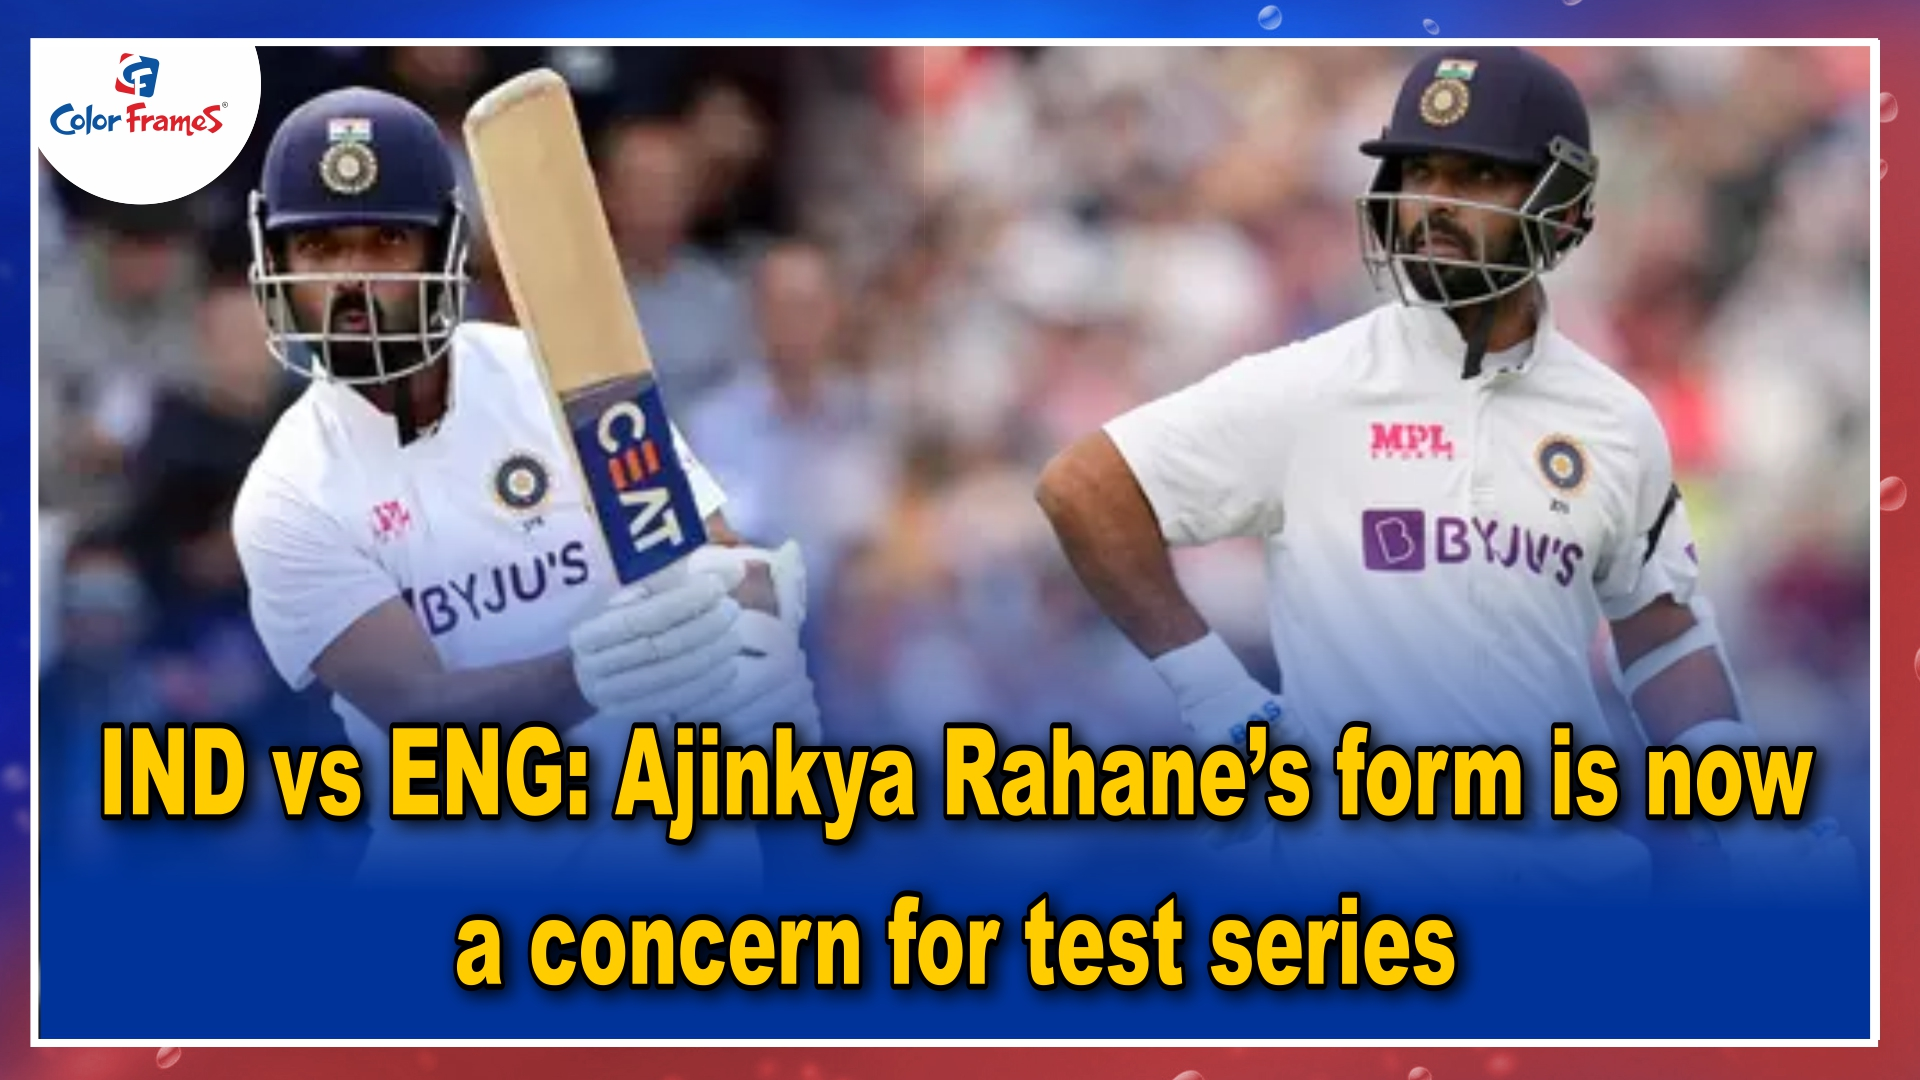 IND vs ENG: Ajinkya Rahane's form is now a concern for test series